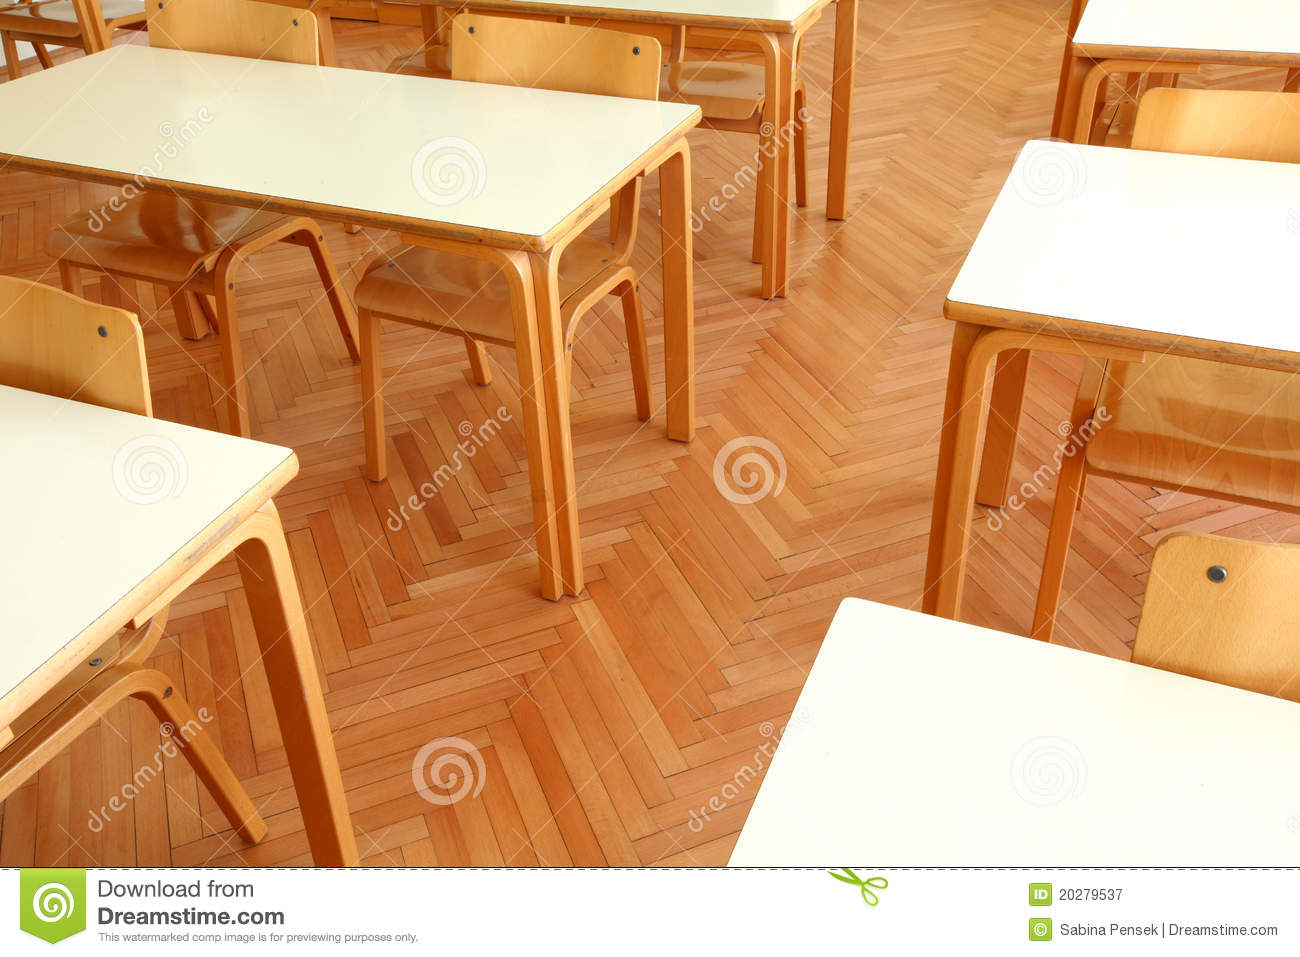 Wooden Classroom Tables And Chairs Stock Image Image Of University Table 20279537